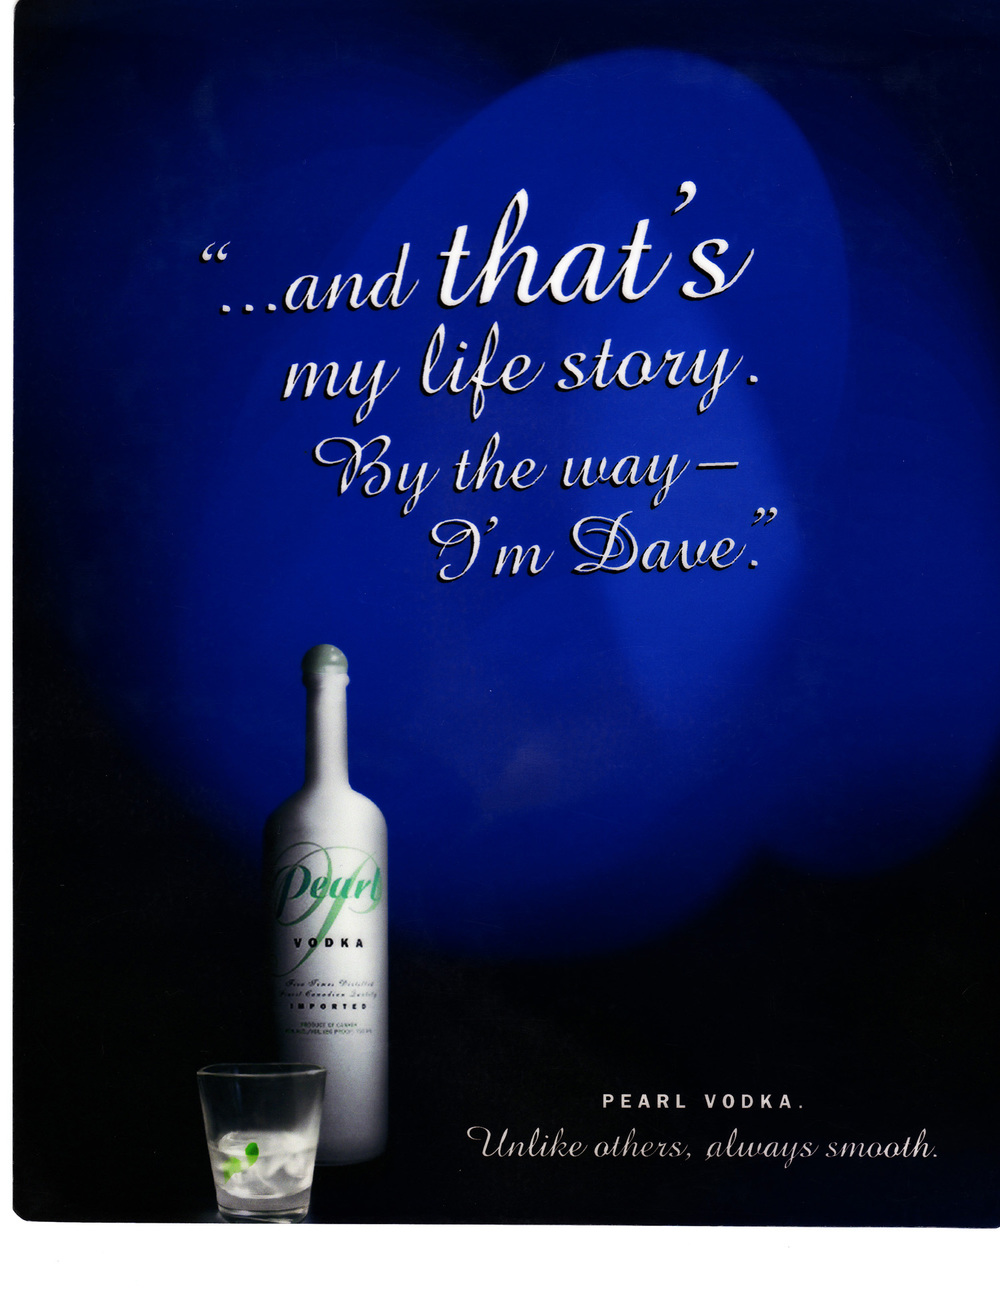 Pearlvodka_dave_for new site.jpg